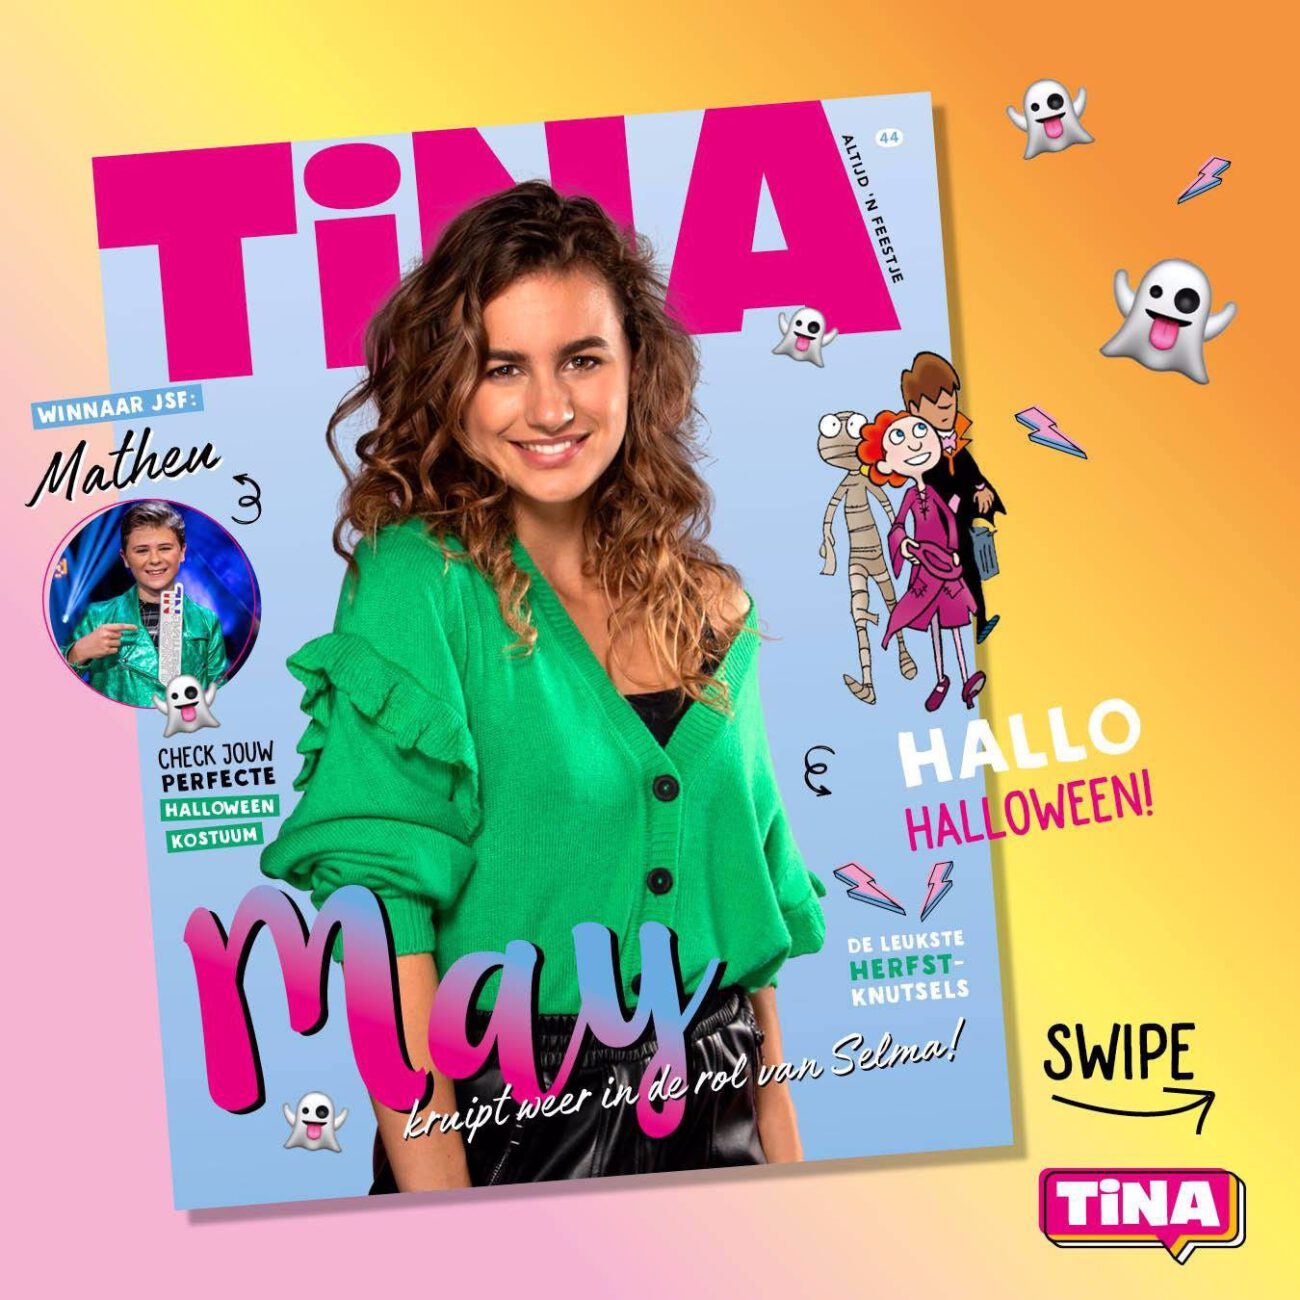 tina-tijdschrift-cover-may-hollermann